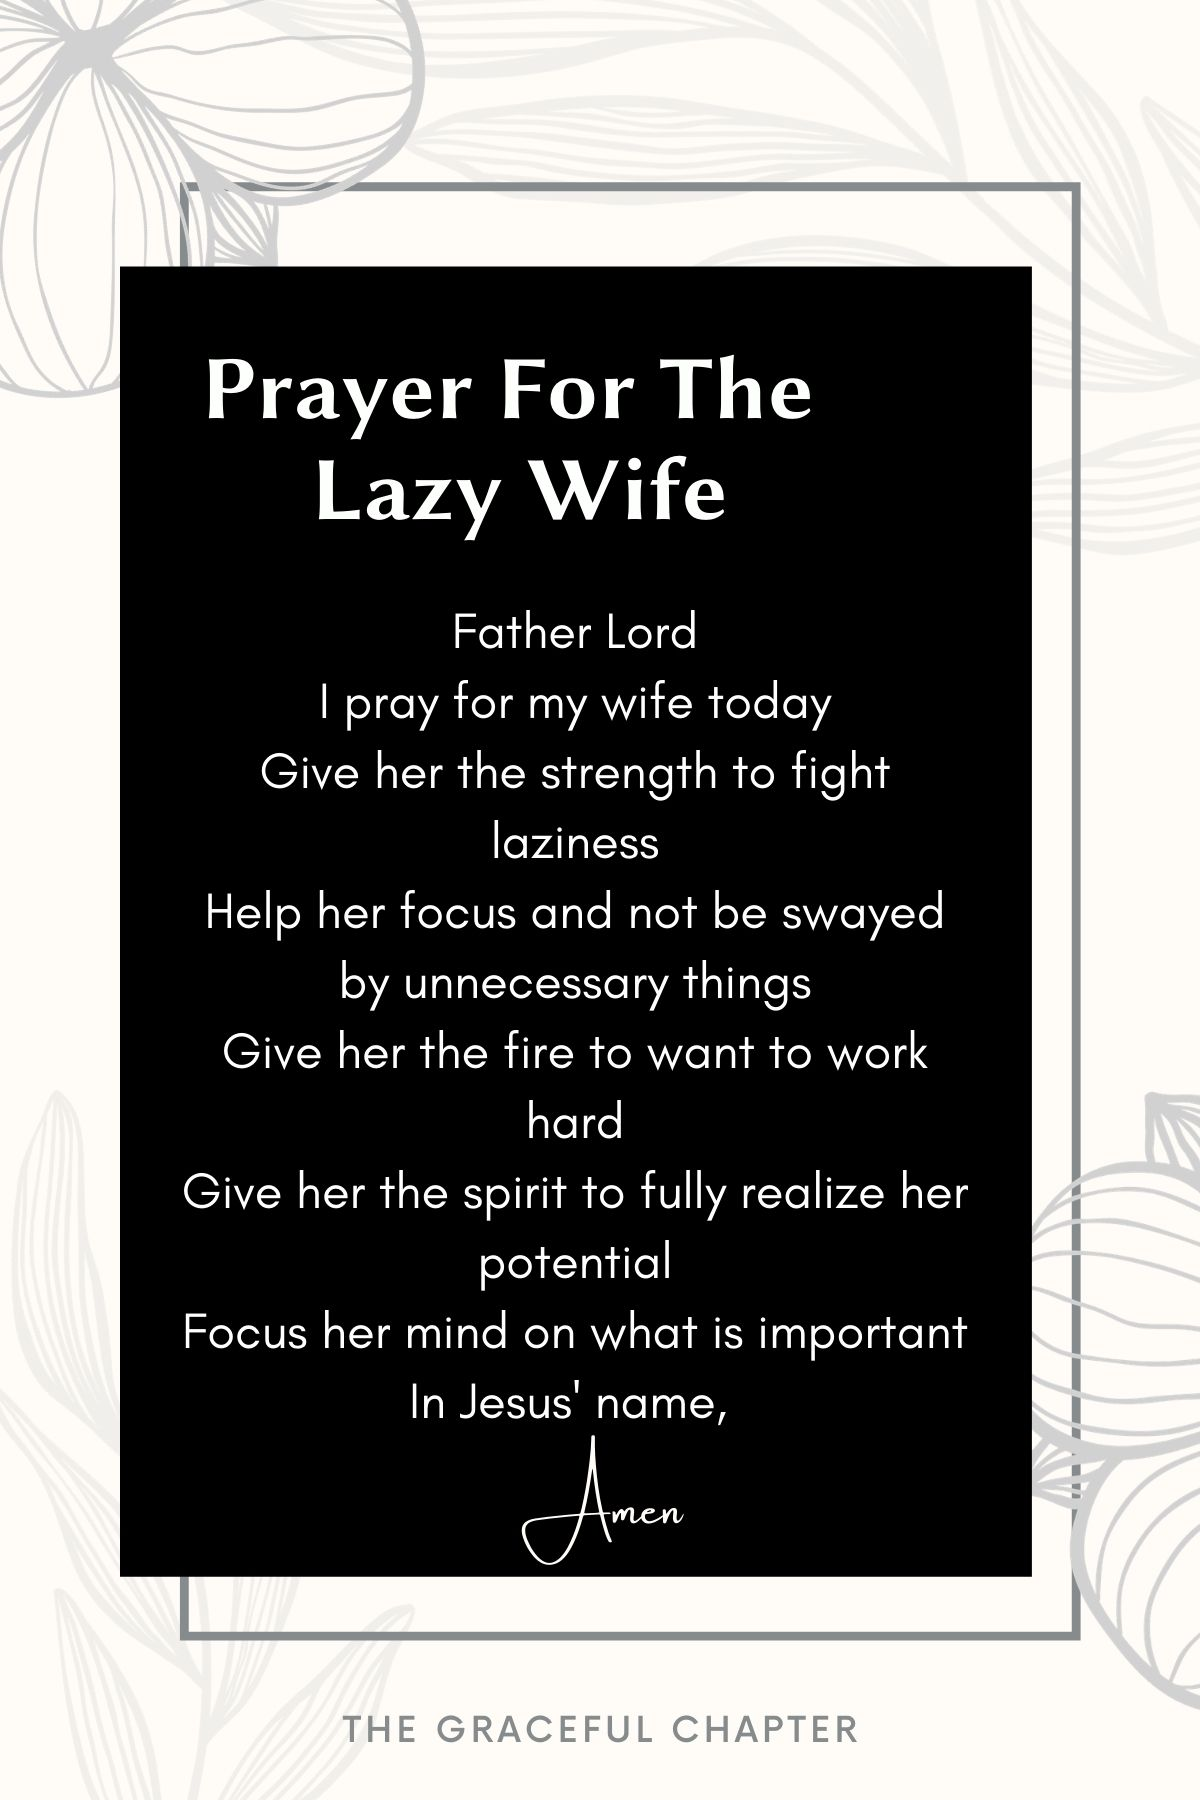 Prayer for the lazy wife